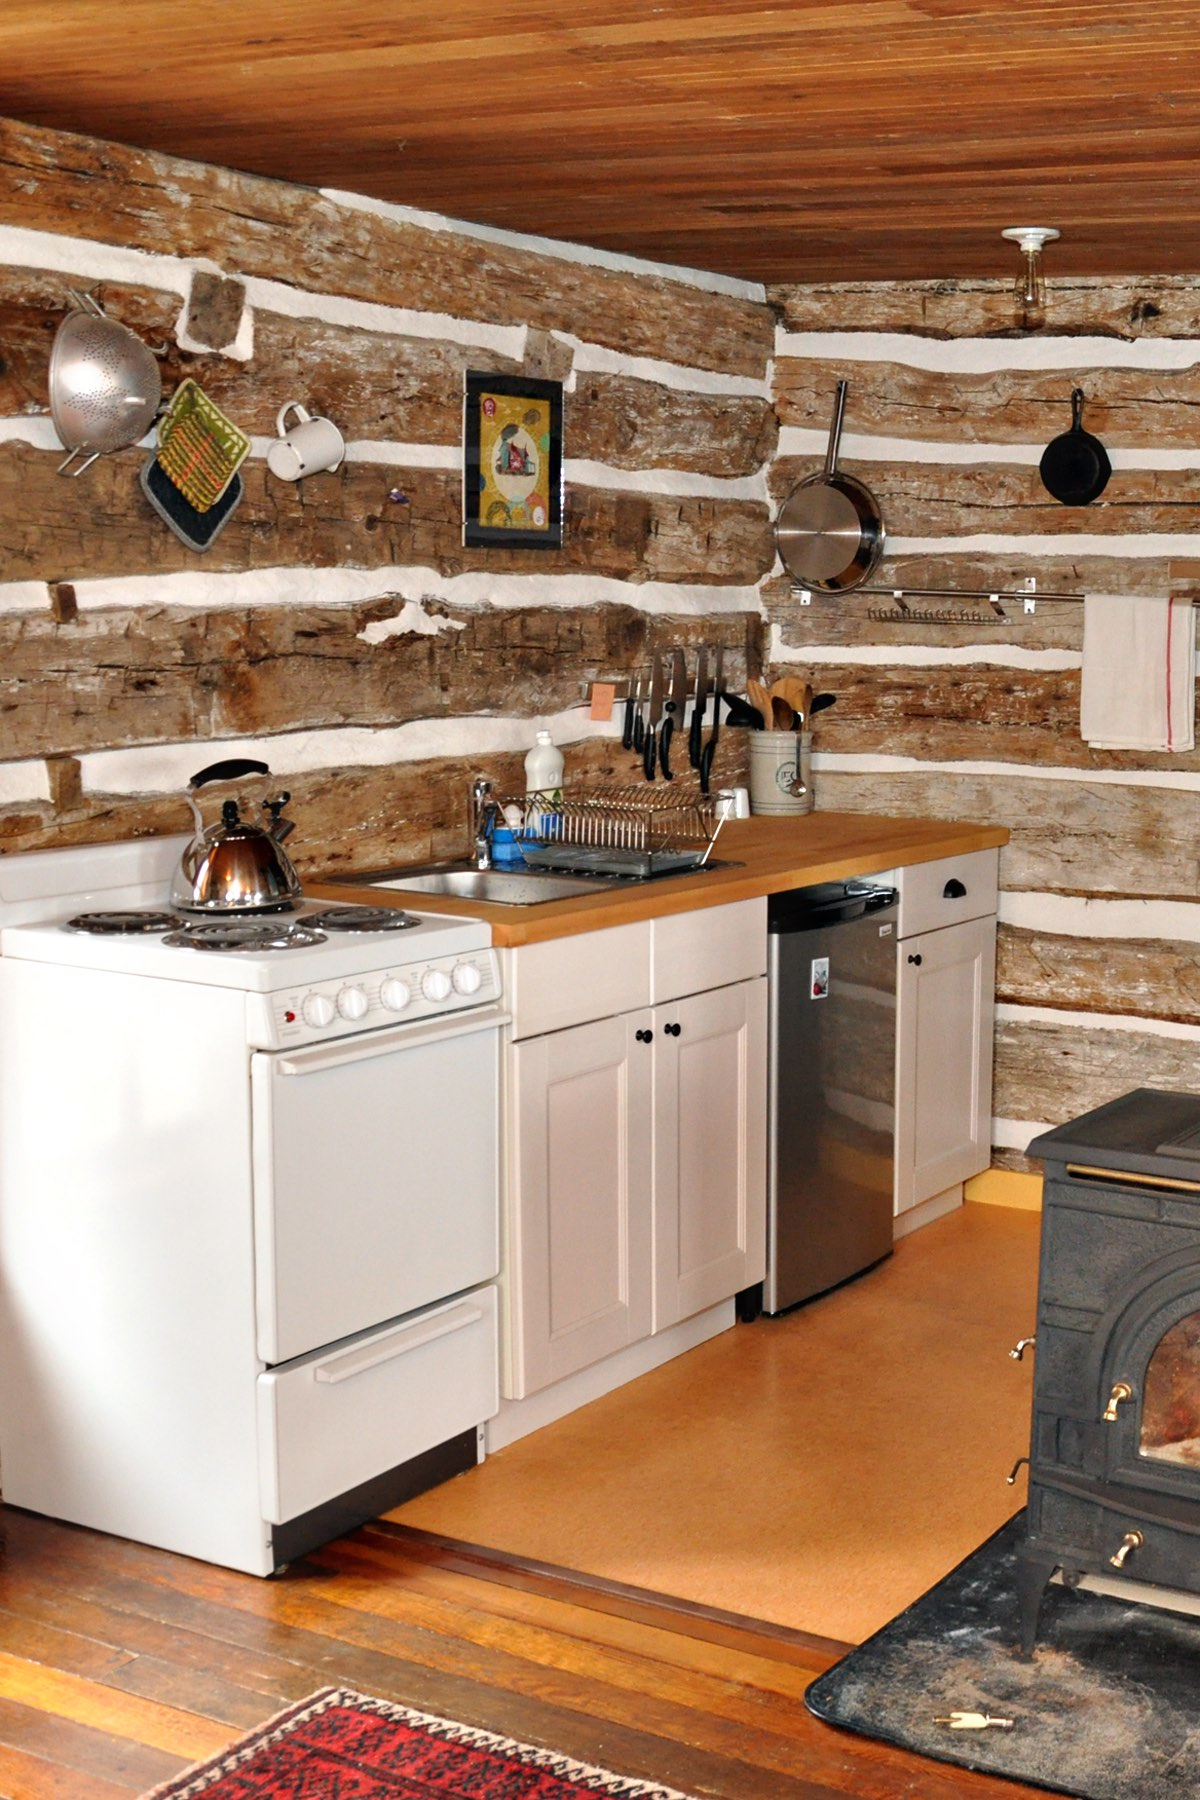 Gallery: Trout River Log Cabin | Small House Bliss on log cabin kitchen countertops, log cabin designer kitchens, log home kitchen, log cabin kitchen plans, log cabin kitchen pulls, log cabin kitchen seating, log cabin outdoor kitchen, log cabin kitchen sinks, log cabin kitchen range, log cabin kitchen faucets, log cabin kitchen curtains, log cabin electrical, log cabin kitchens with stone, log cabin kitchen tiles, log cabin kitchens with islands, log cabin kitchen backsplash, log cabin kitchen ideas, log cabin refrigerator, log cabin kitchens and baths, log cabin kitchen layout,